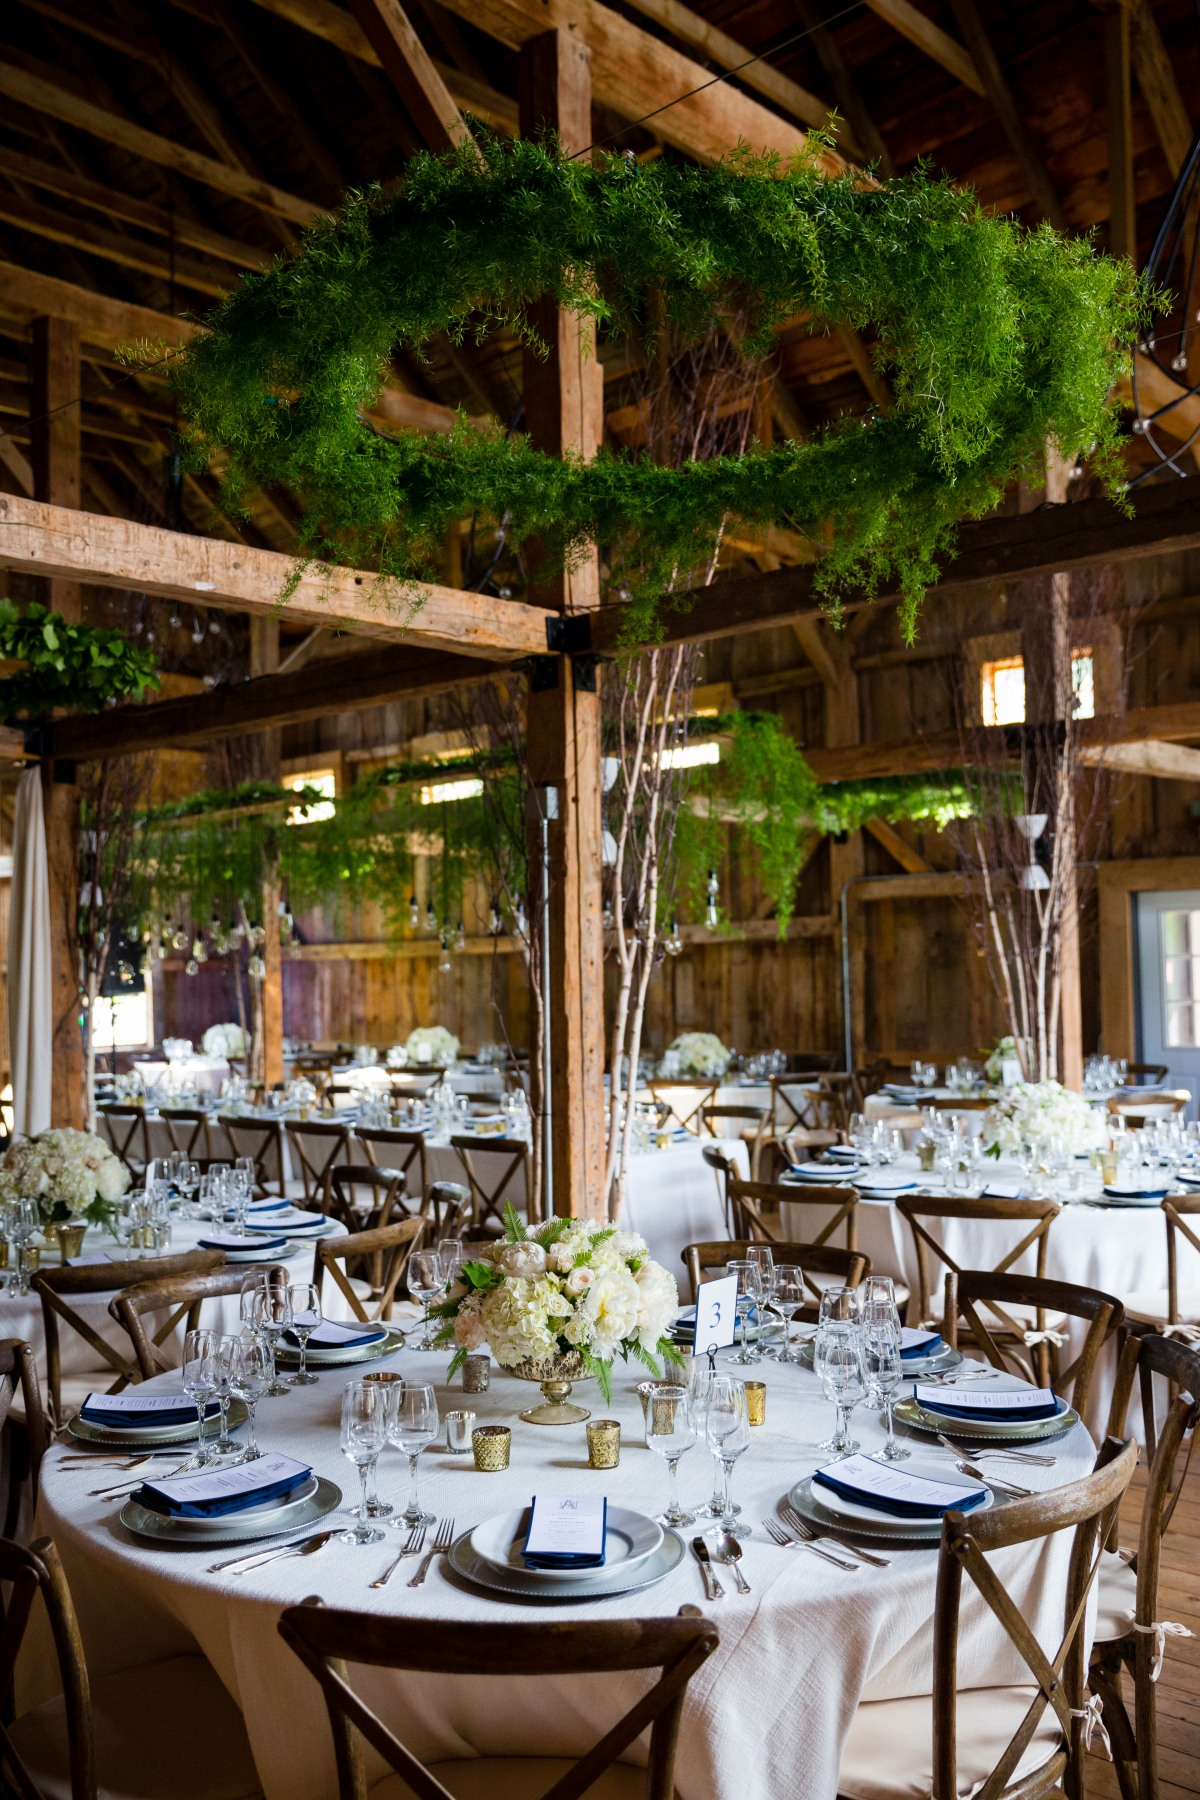 flanagan-farm-wedding-tablescape-decor